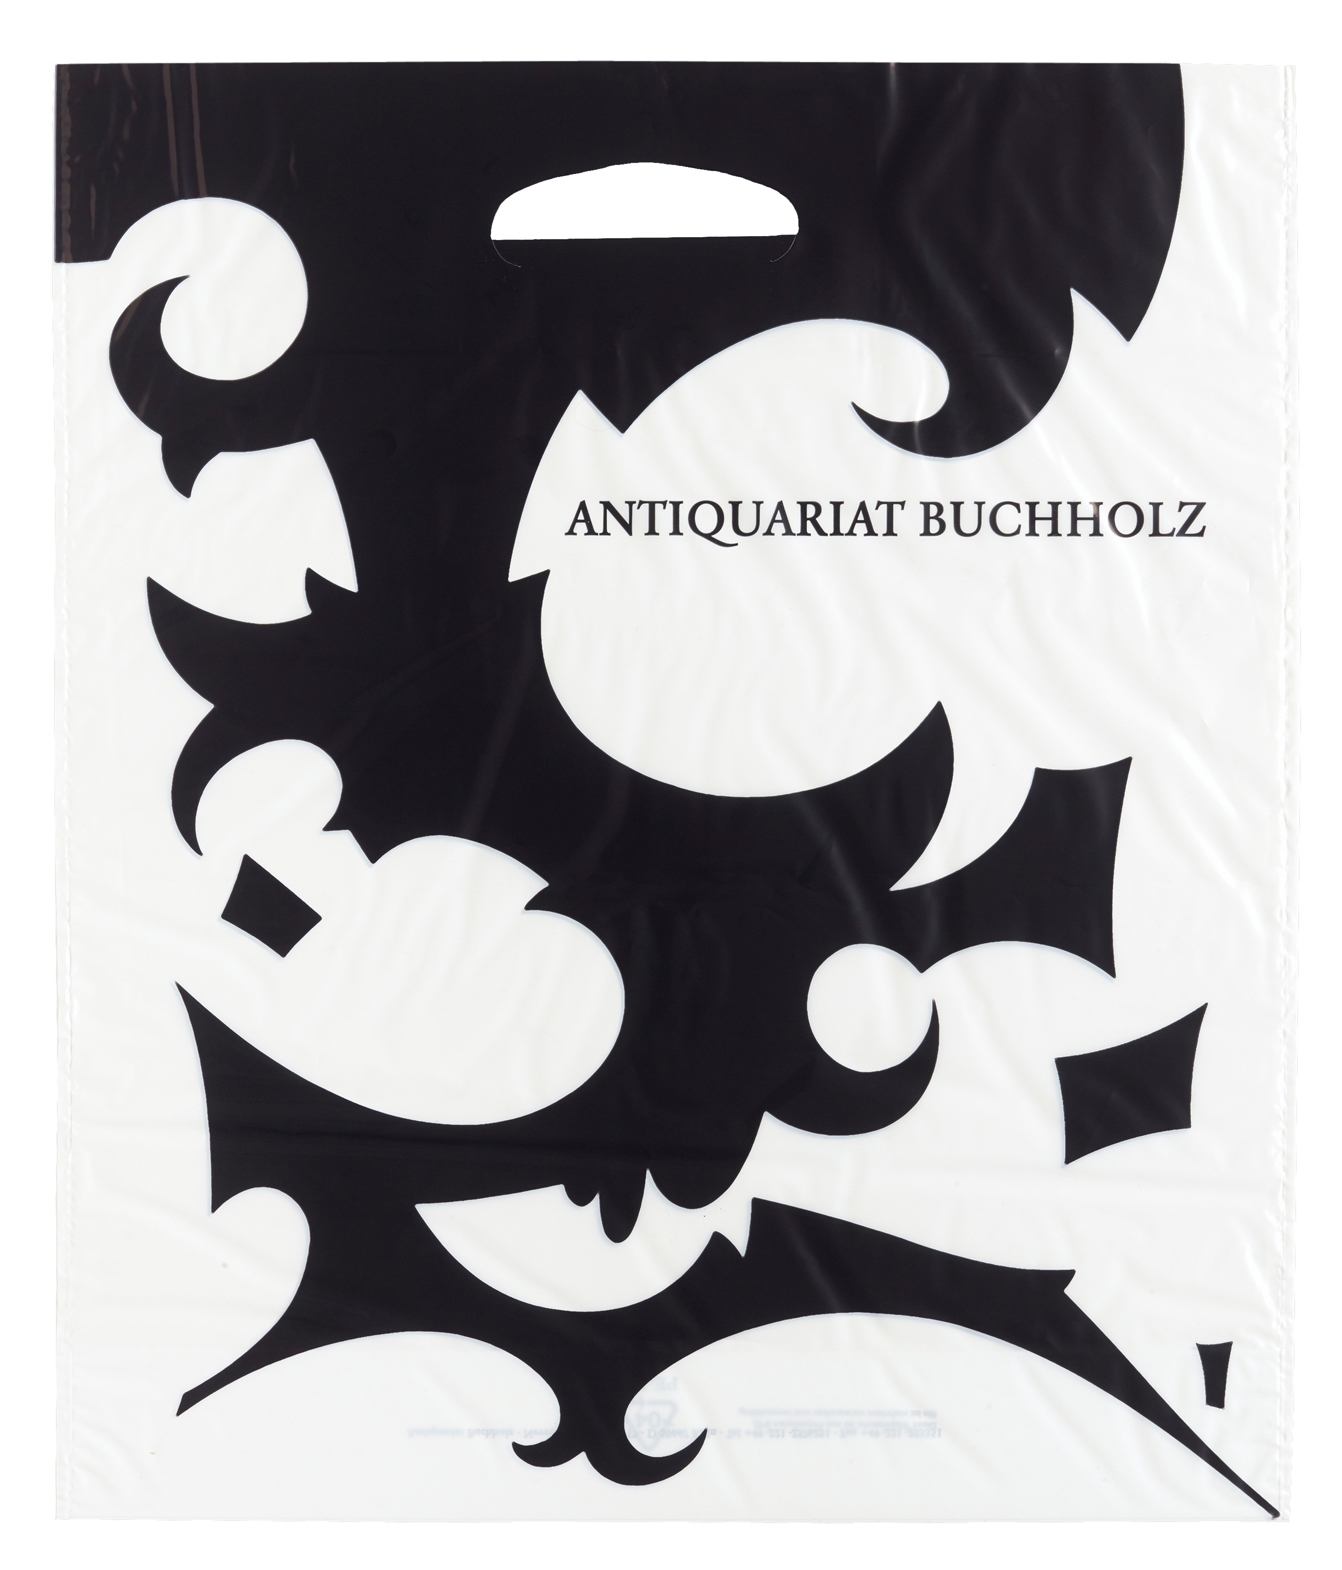 Julian Göthe – 2005, design for plastic shopping bag for Antiquariat Buchholz 43 x 38 cm –